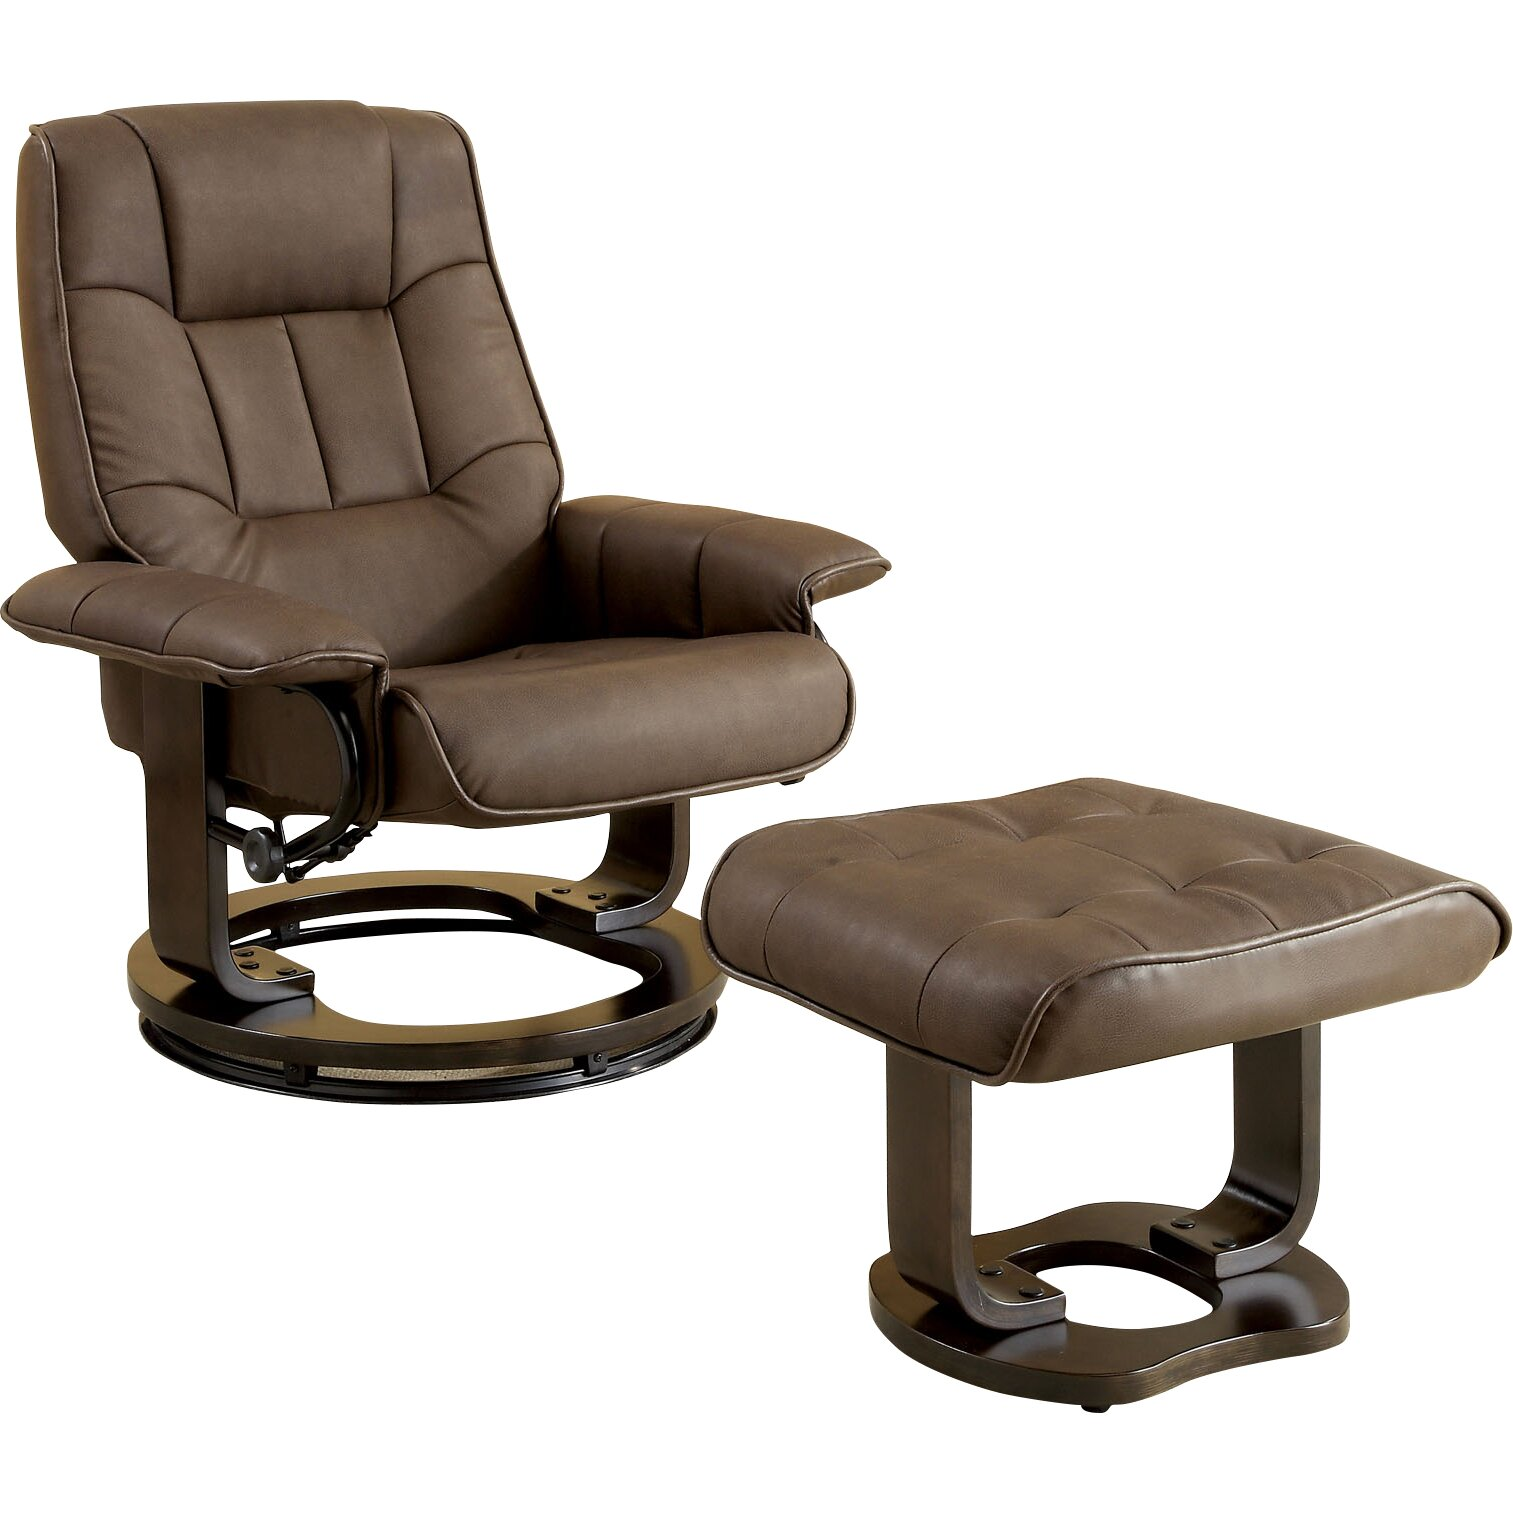 Hokku Designs Leatherette Swivel Recliner Chair And